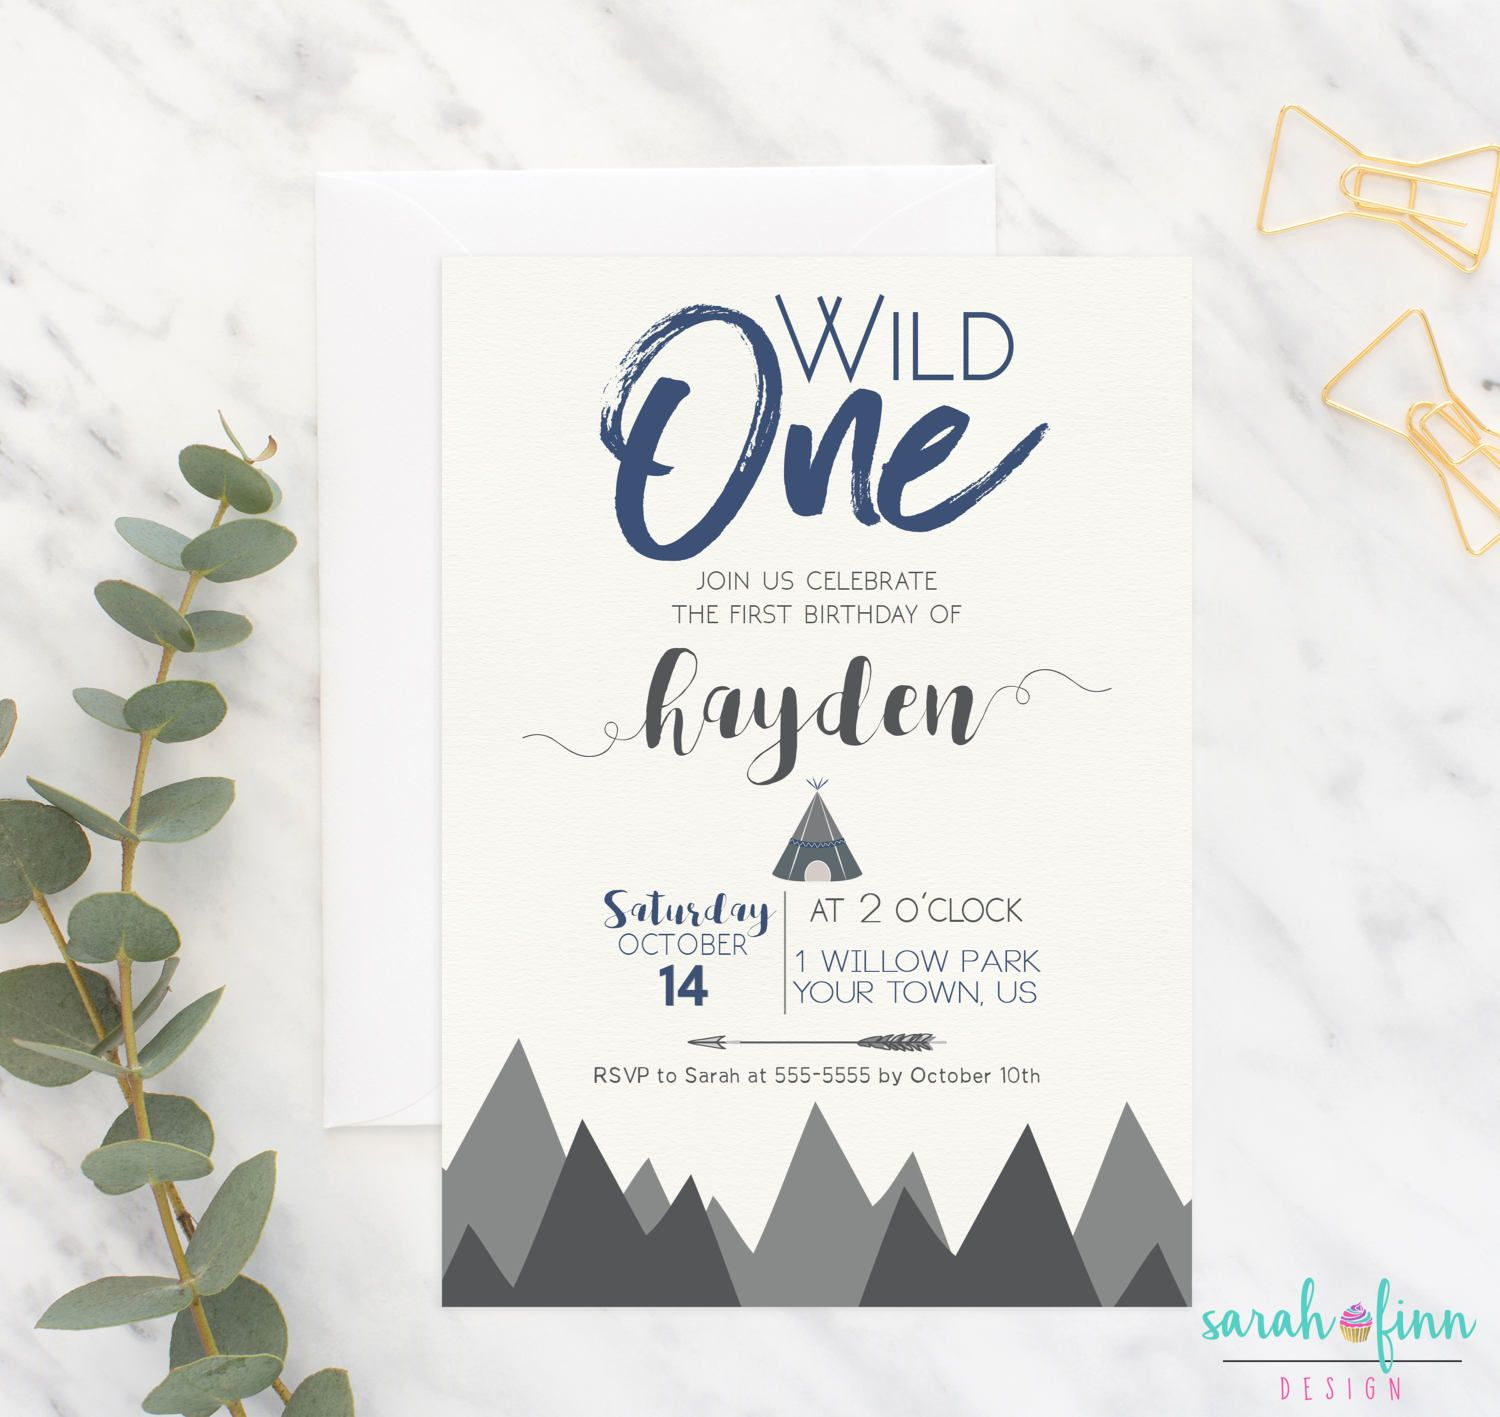 first birthday invitation wordings india%0A    wild one first birthday invitations  printed boy  st birthday invitations   black and white arrow invites  first birthday arrow invites   Arrow